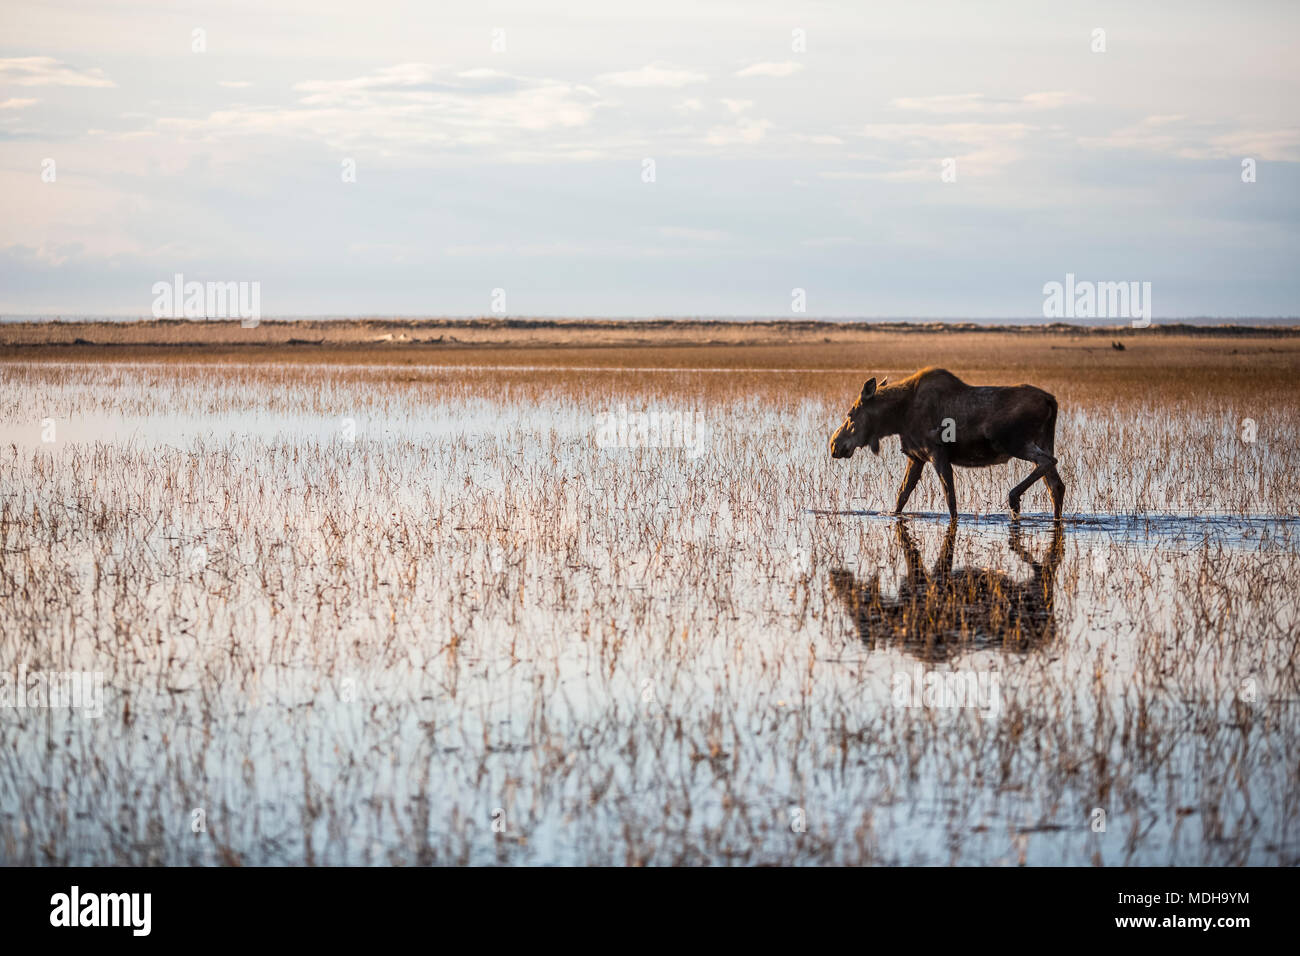 A cow moose (alces alces) walks through shallow water with a reflection and the horizon; Anchorage, Alaska, United States of America - Stock Image